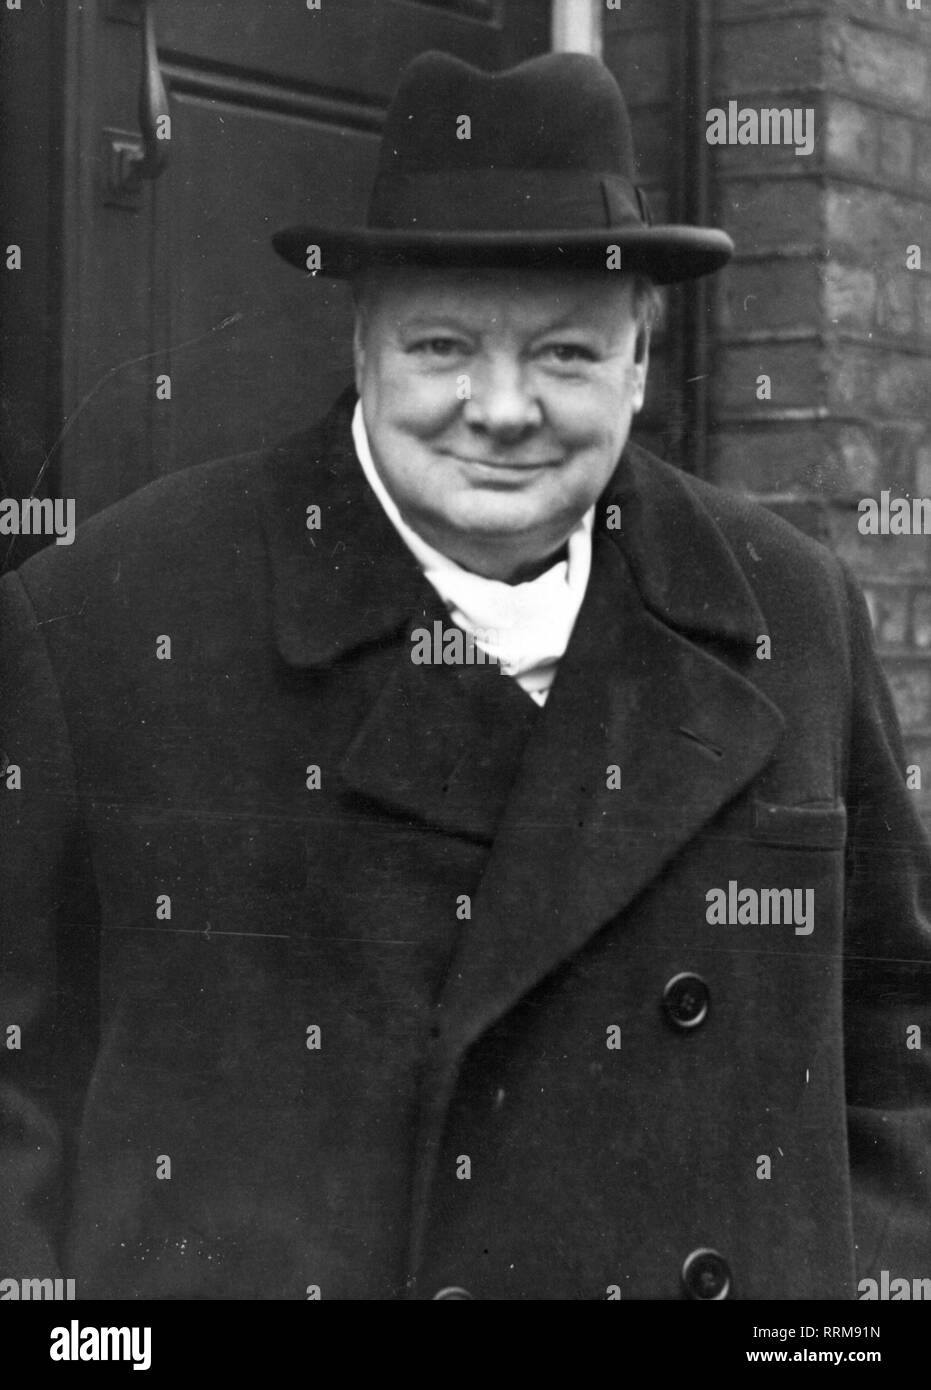 Churchill, Winston, 30.11.1874 - 24.1.1965, British politician (Cons.), Leader of the Opposition 1945 - 1951, half length, at his 73rd birthday, 28 Hyde Park Gate, Kensington, London, 30.11.1946, Additional-Rights-Clearance-Info-Not-Available - Stock Image